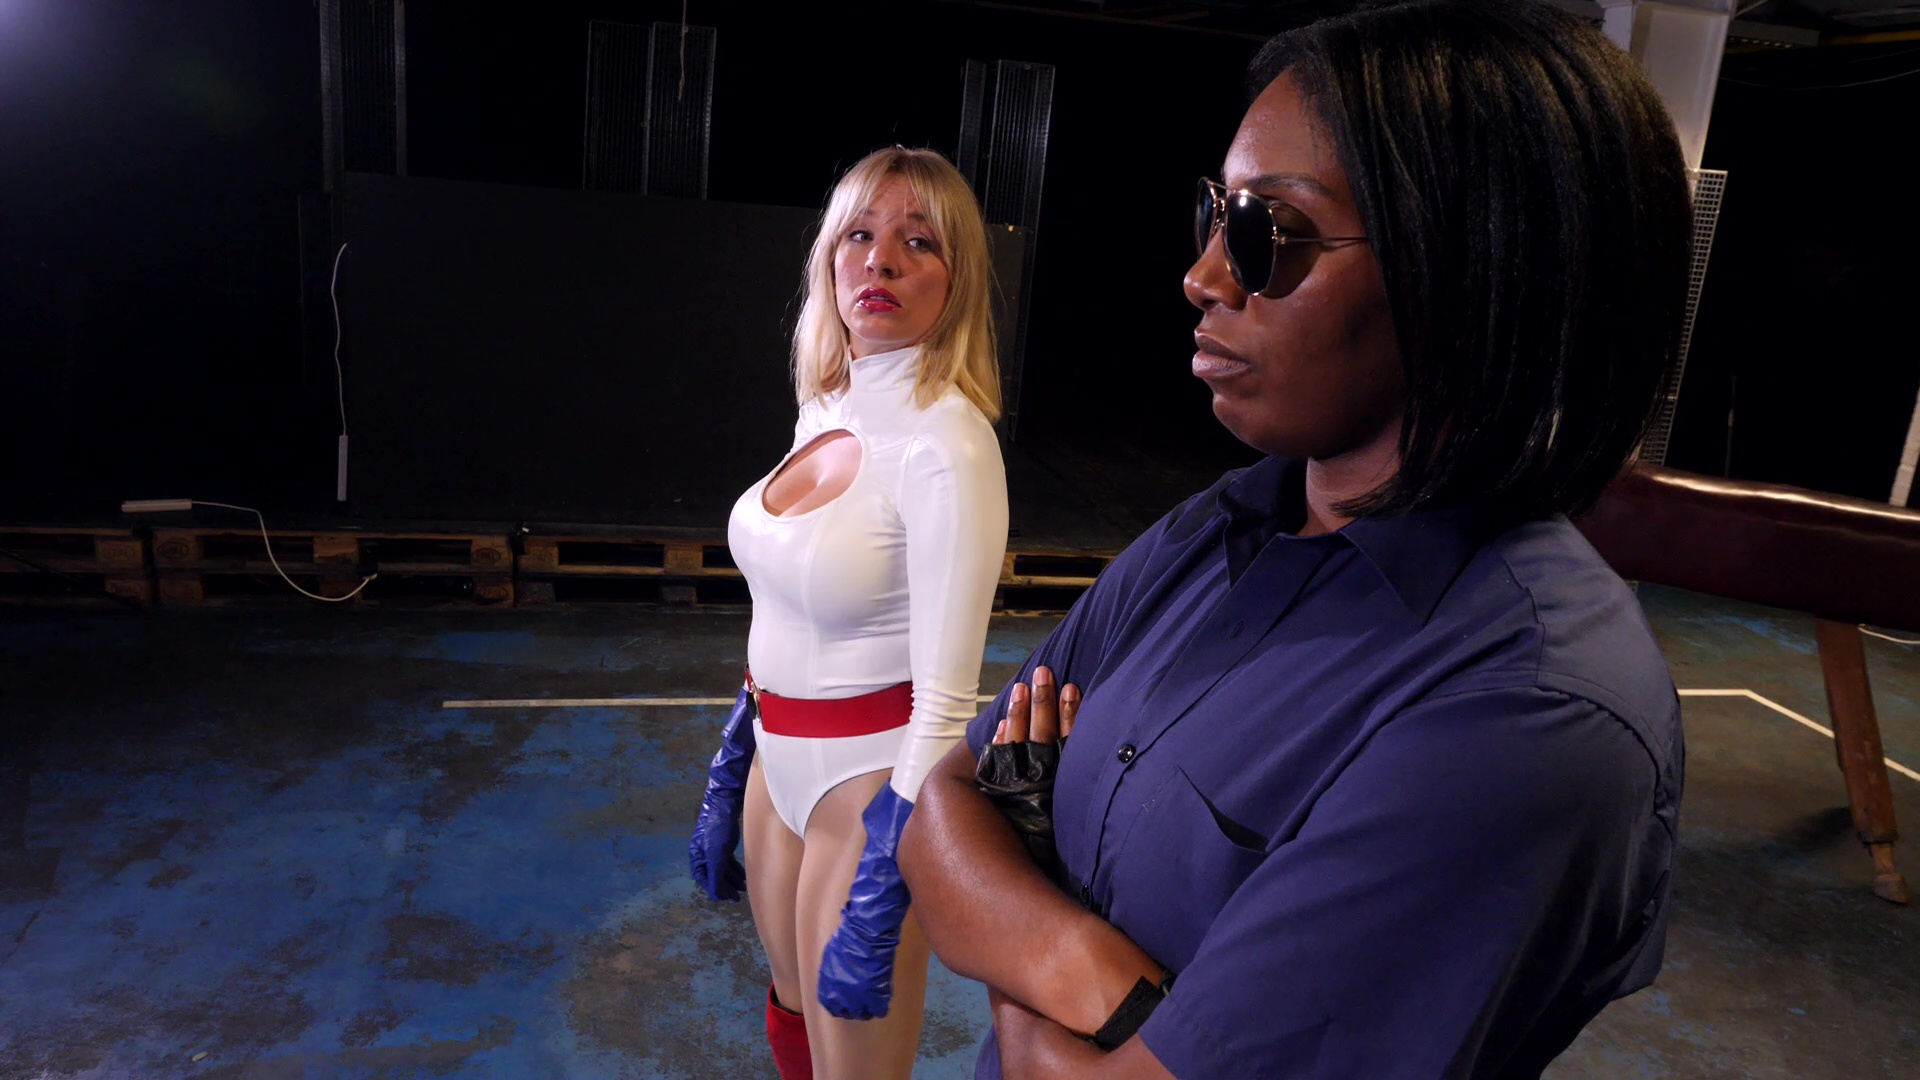 OUT NOW: Federal Enforcement @ ActionCosplay.com